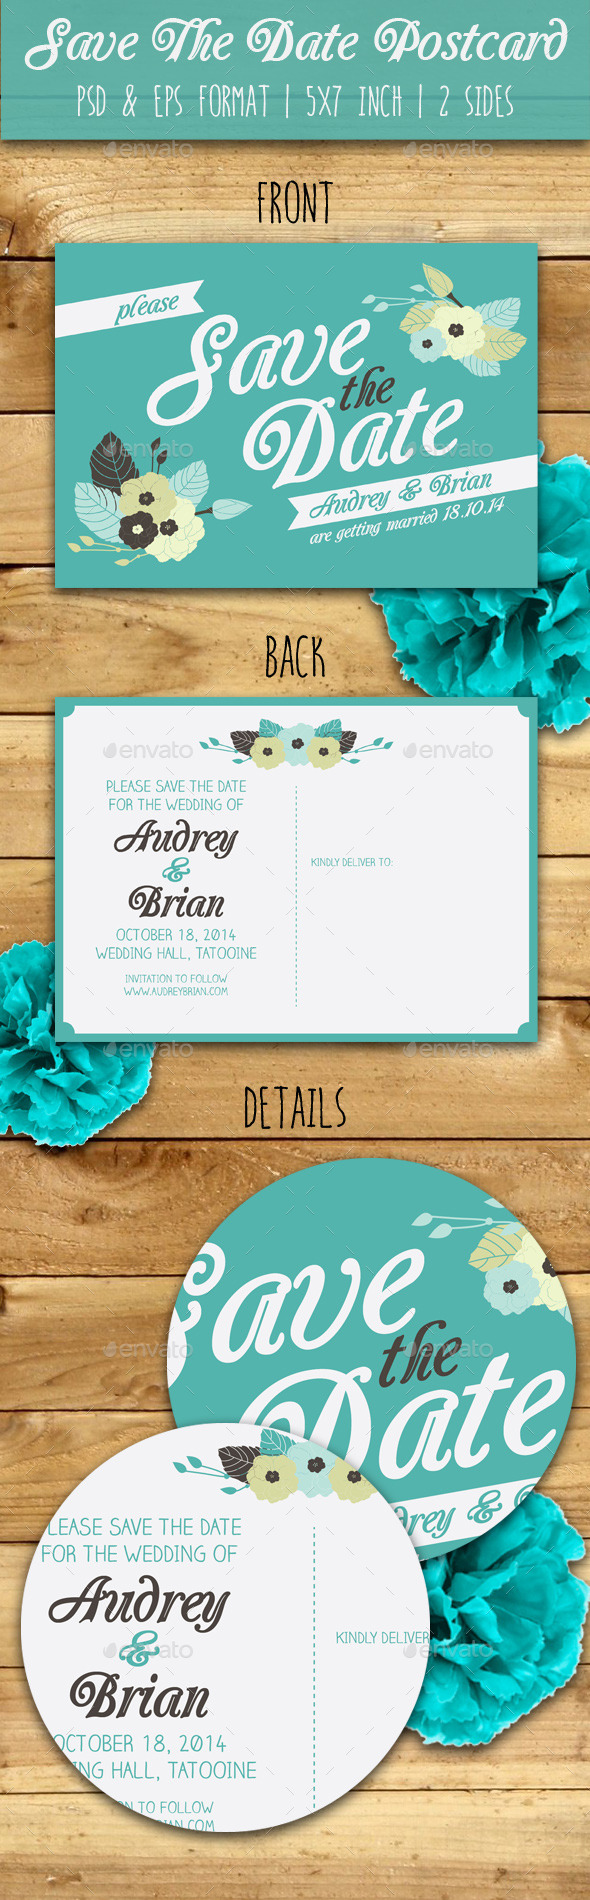 GraphicRiver Save The Date Postcard 9129848